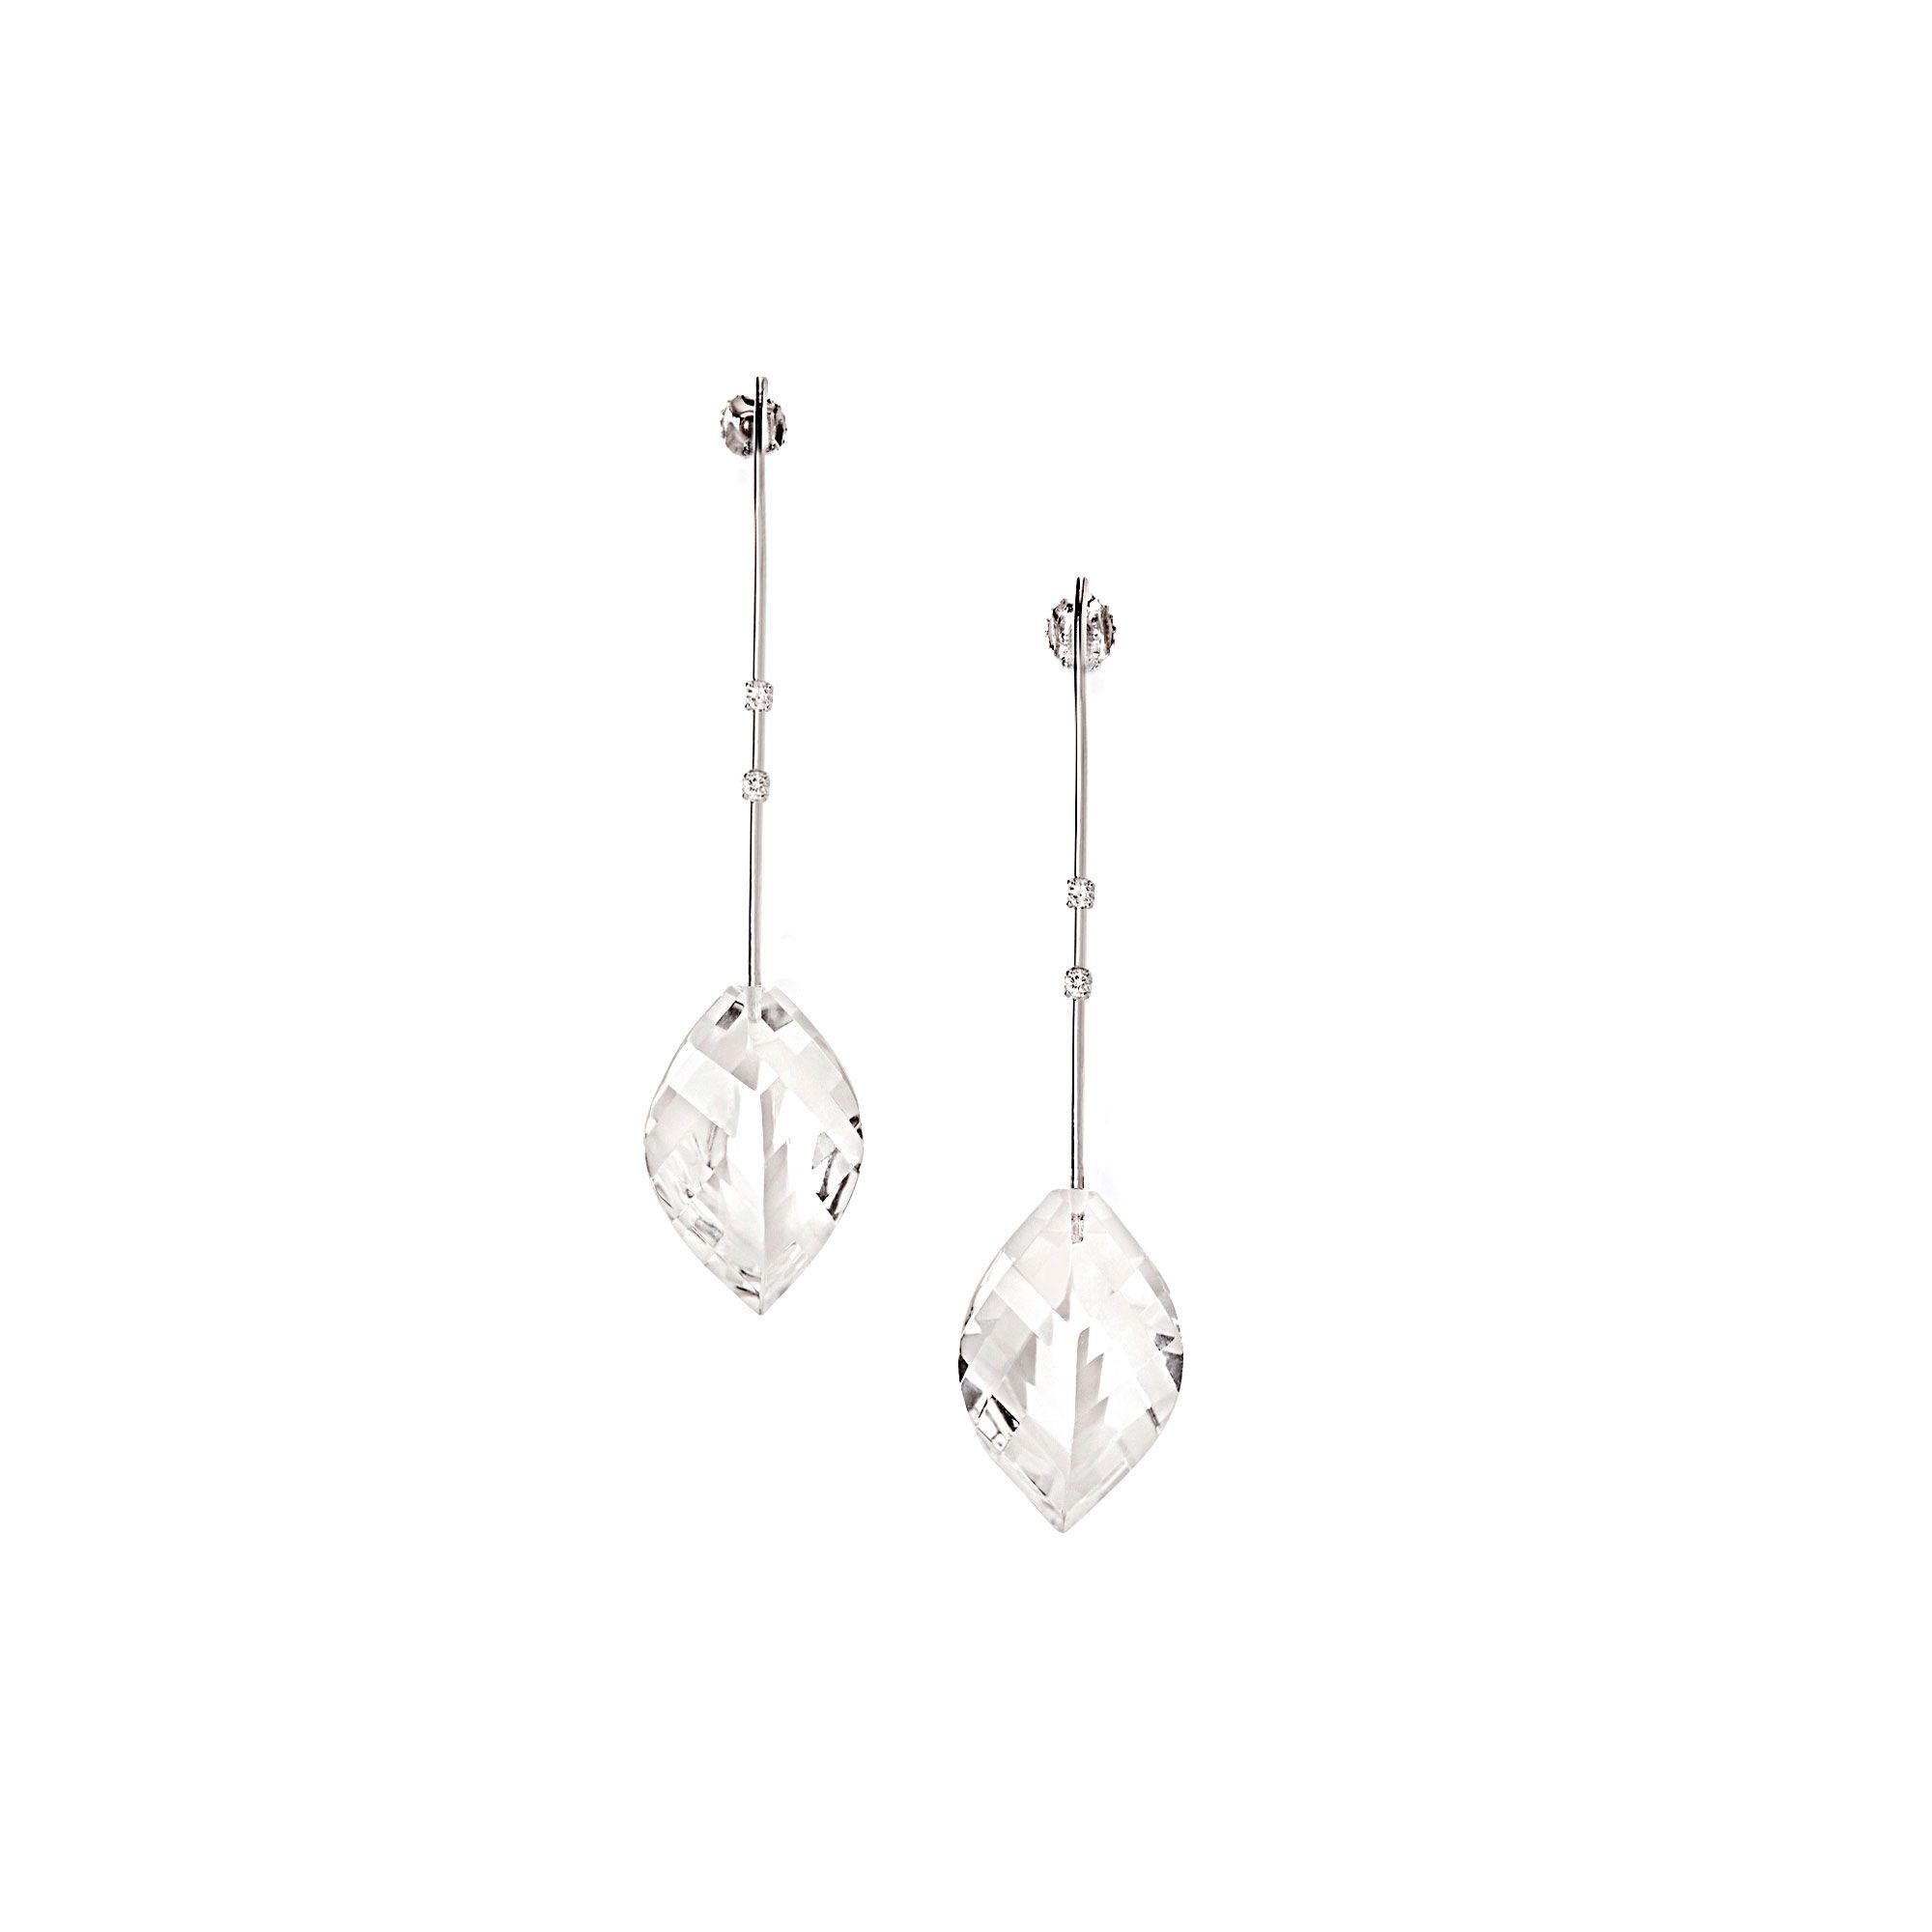 White gold 'Amo' earring with crystals Earrings in white gold, diamonds and rock crystals